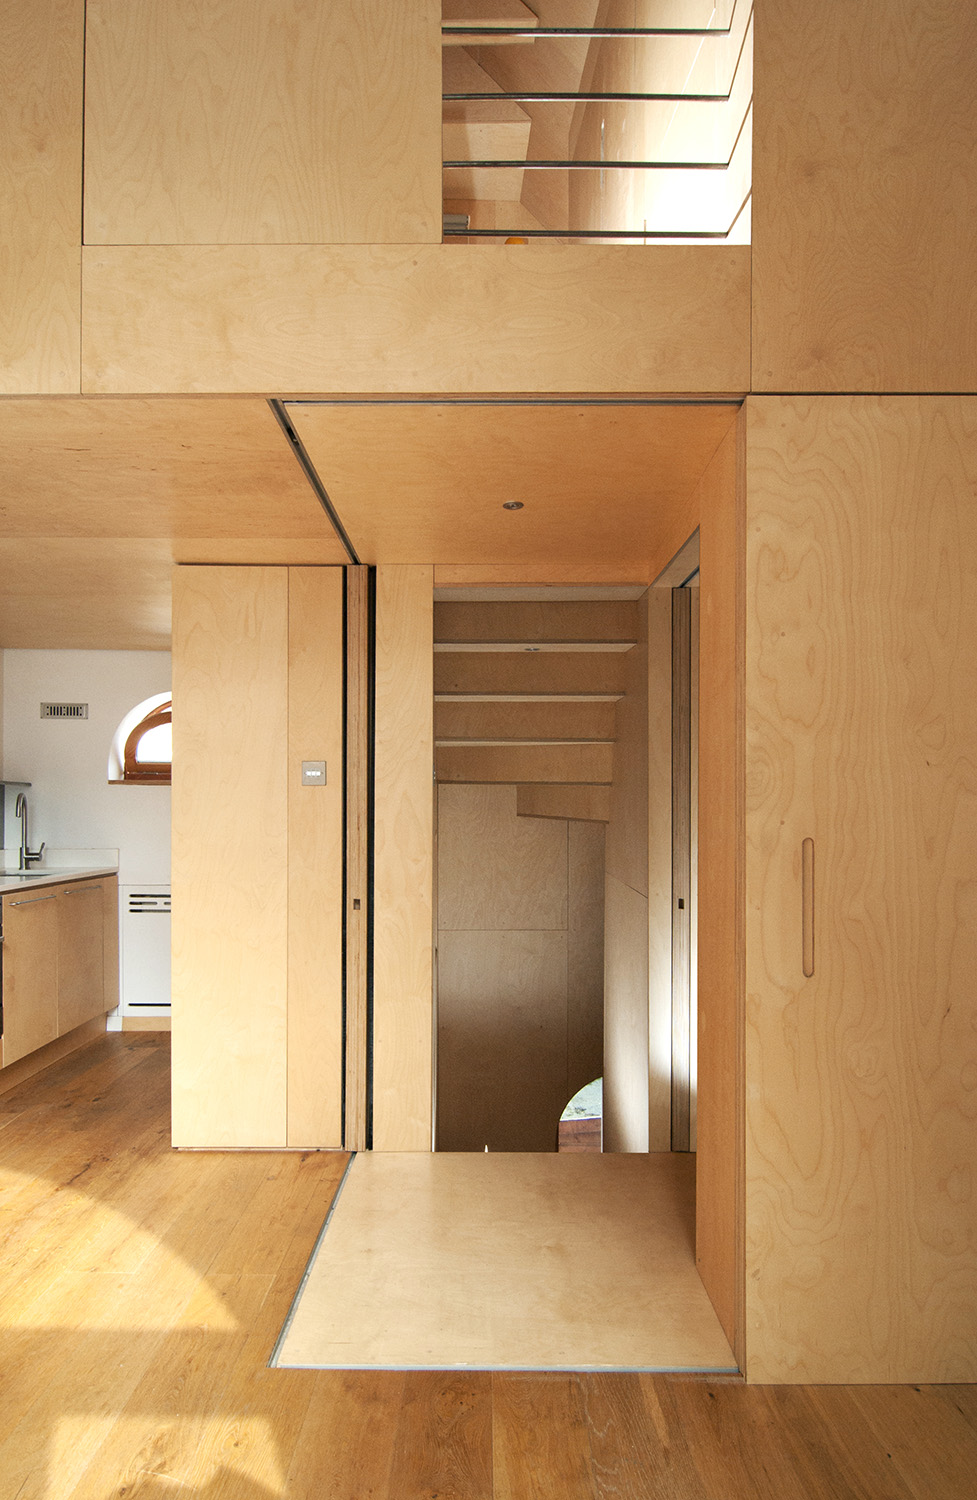 Entrance to the Plywood corridor from the open plan kitchen and living space.